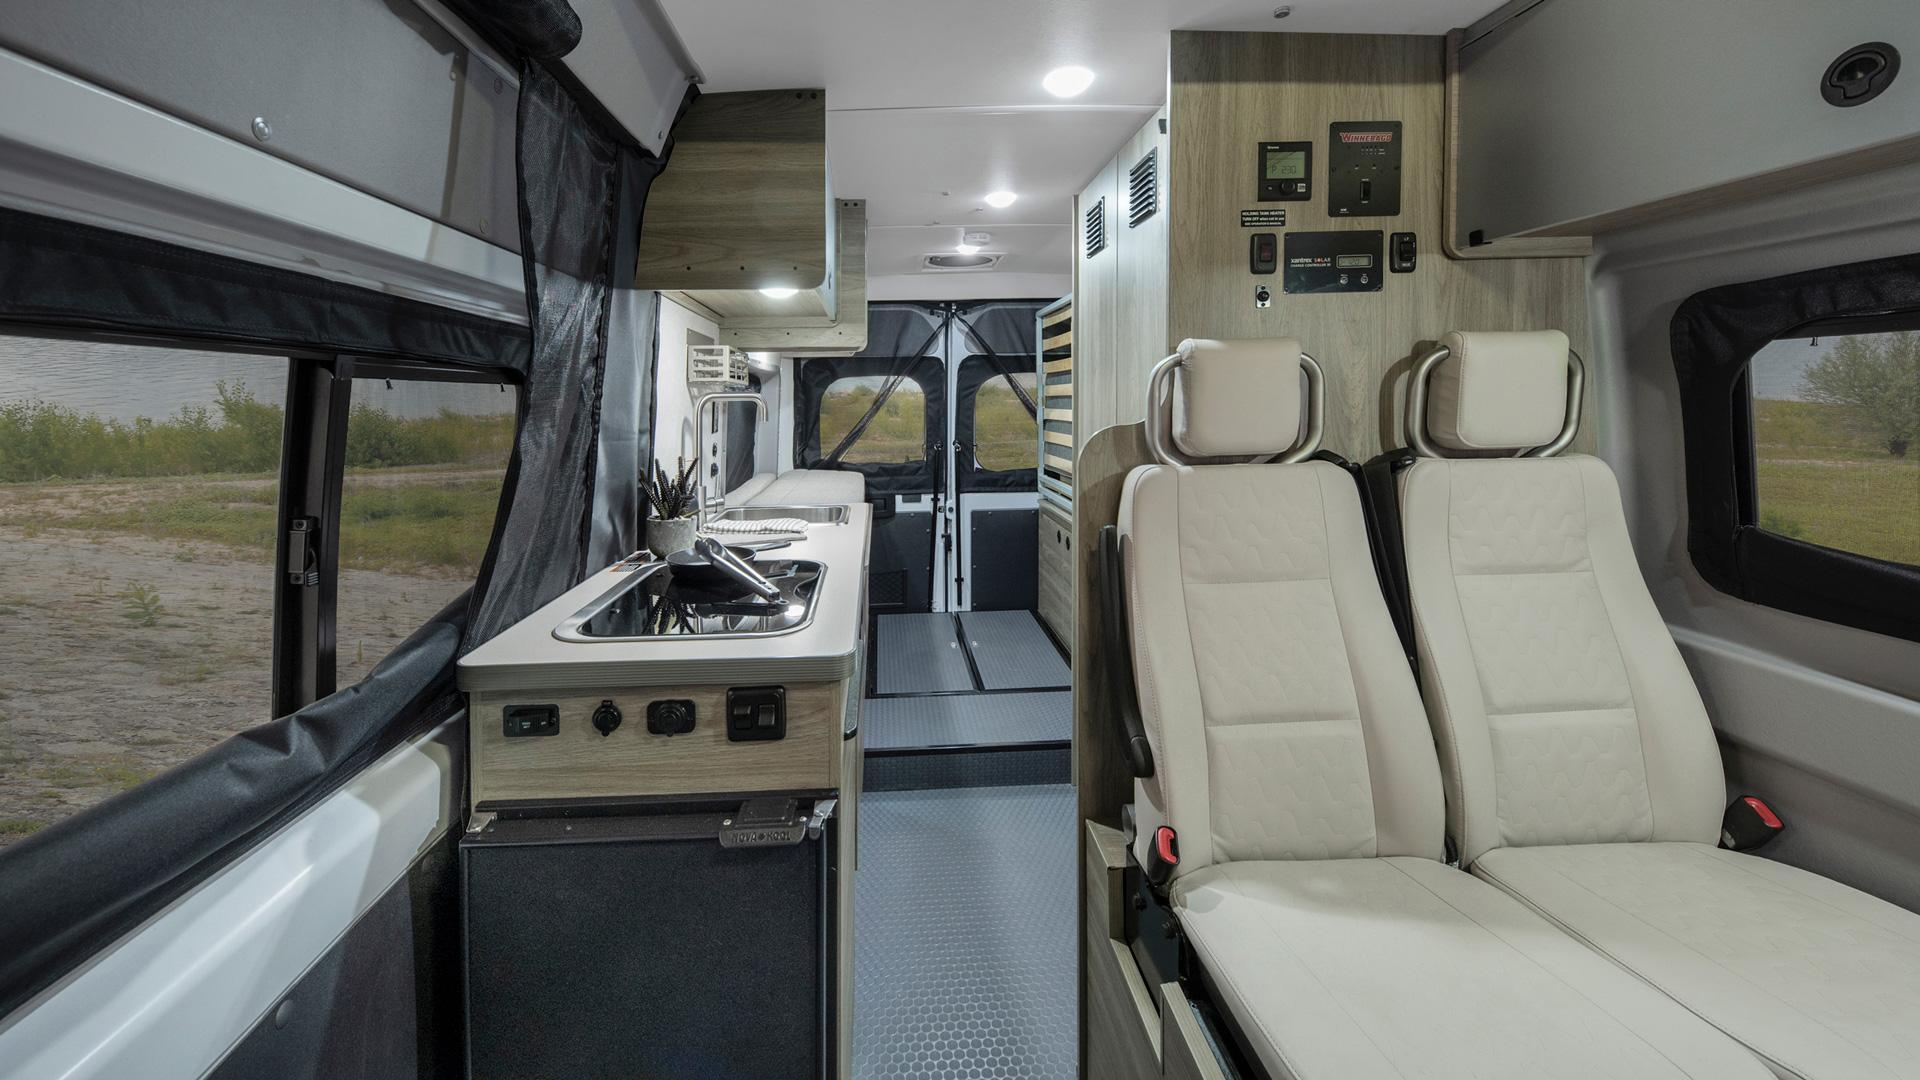 Winnebago Solis full view, front to back